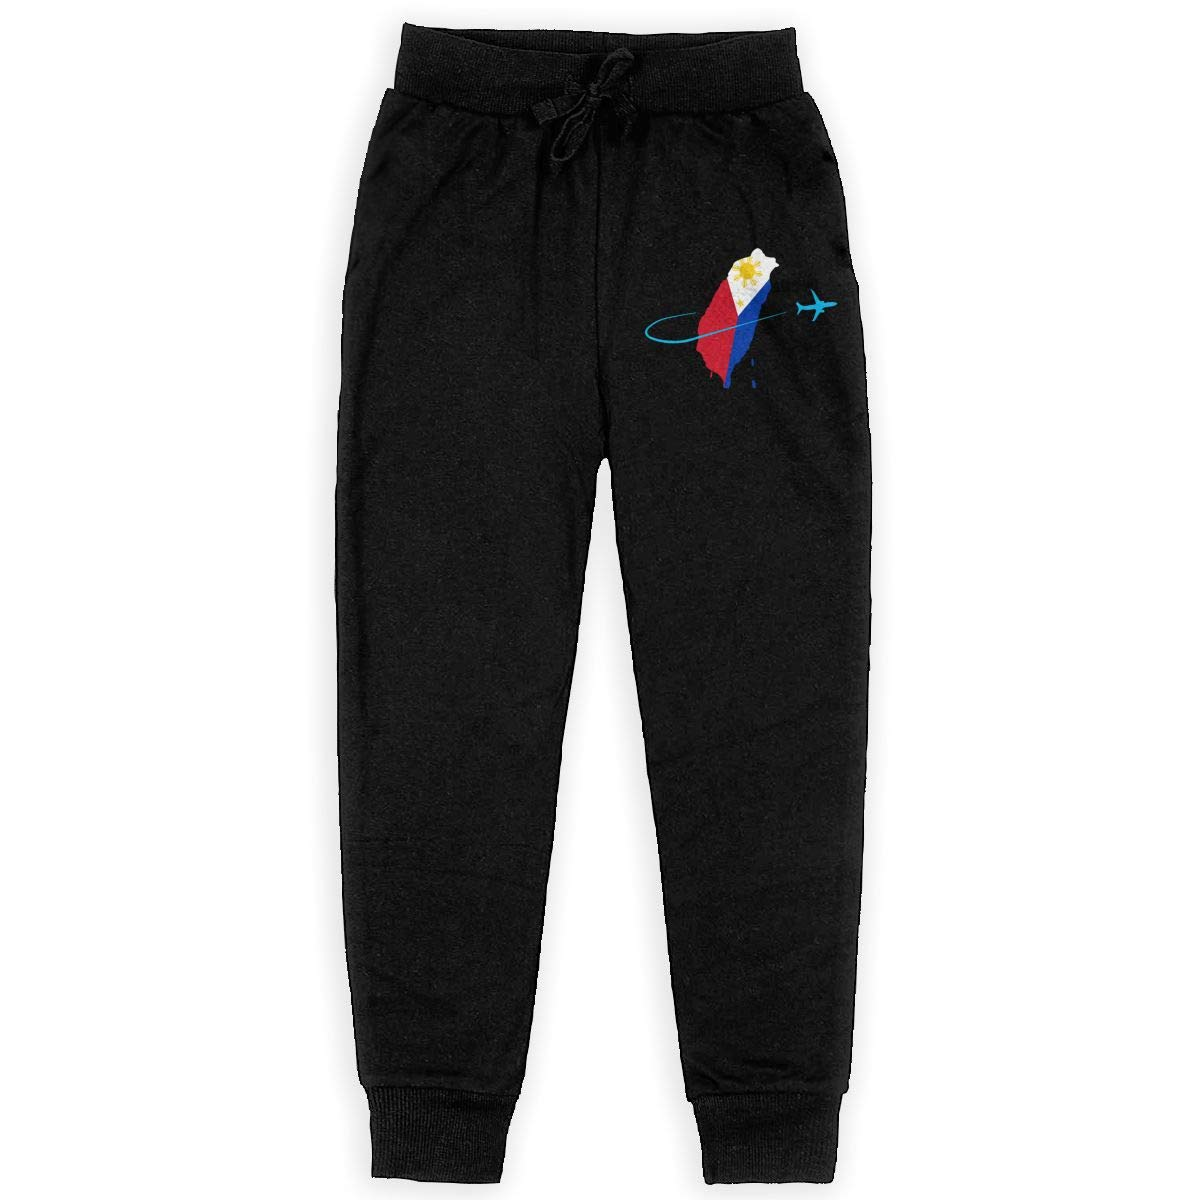 WYZVK22 Philippines Flag with Plane Soft//Cozy Sweatpants Girls Fleece Pants for Teenager Boys